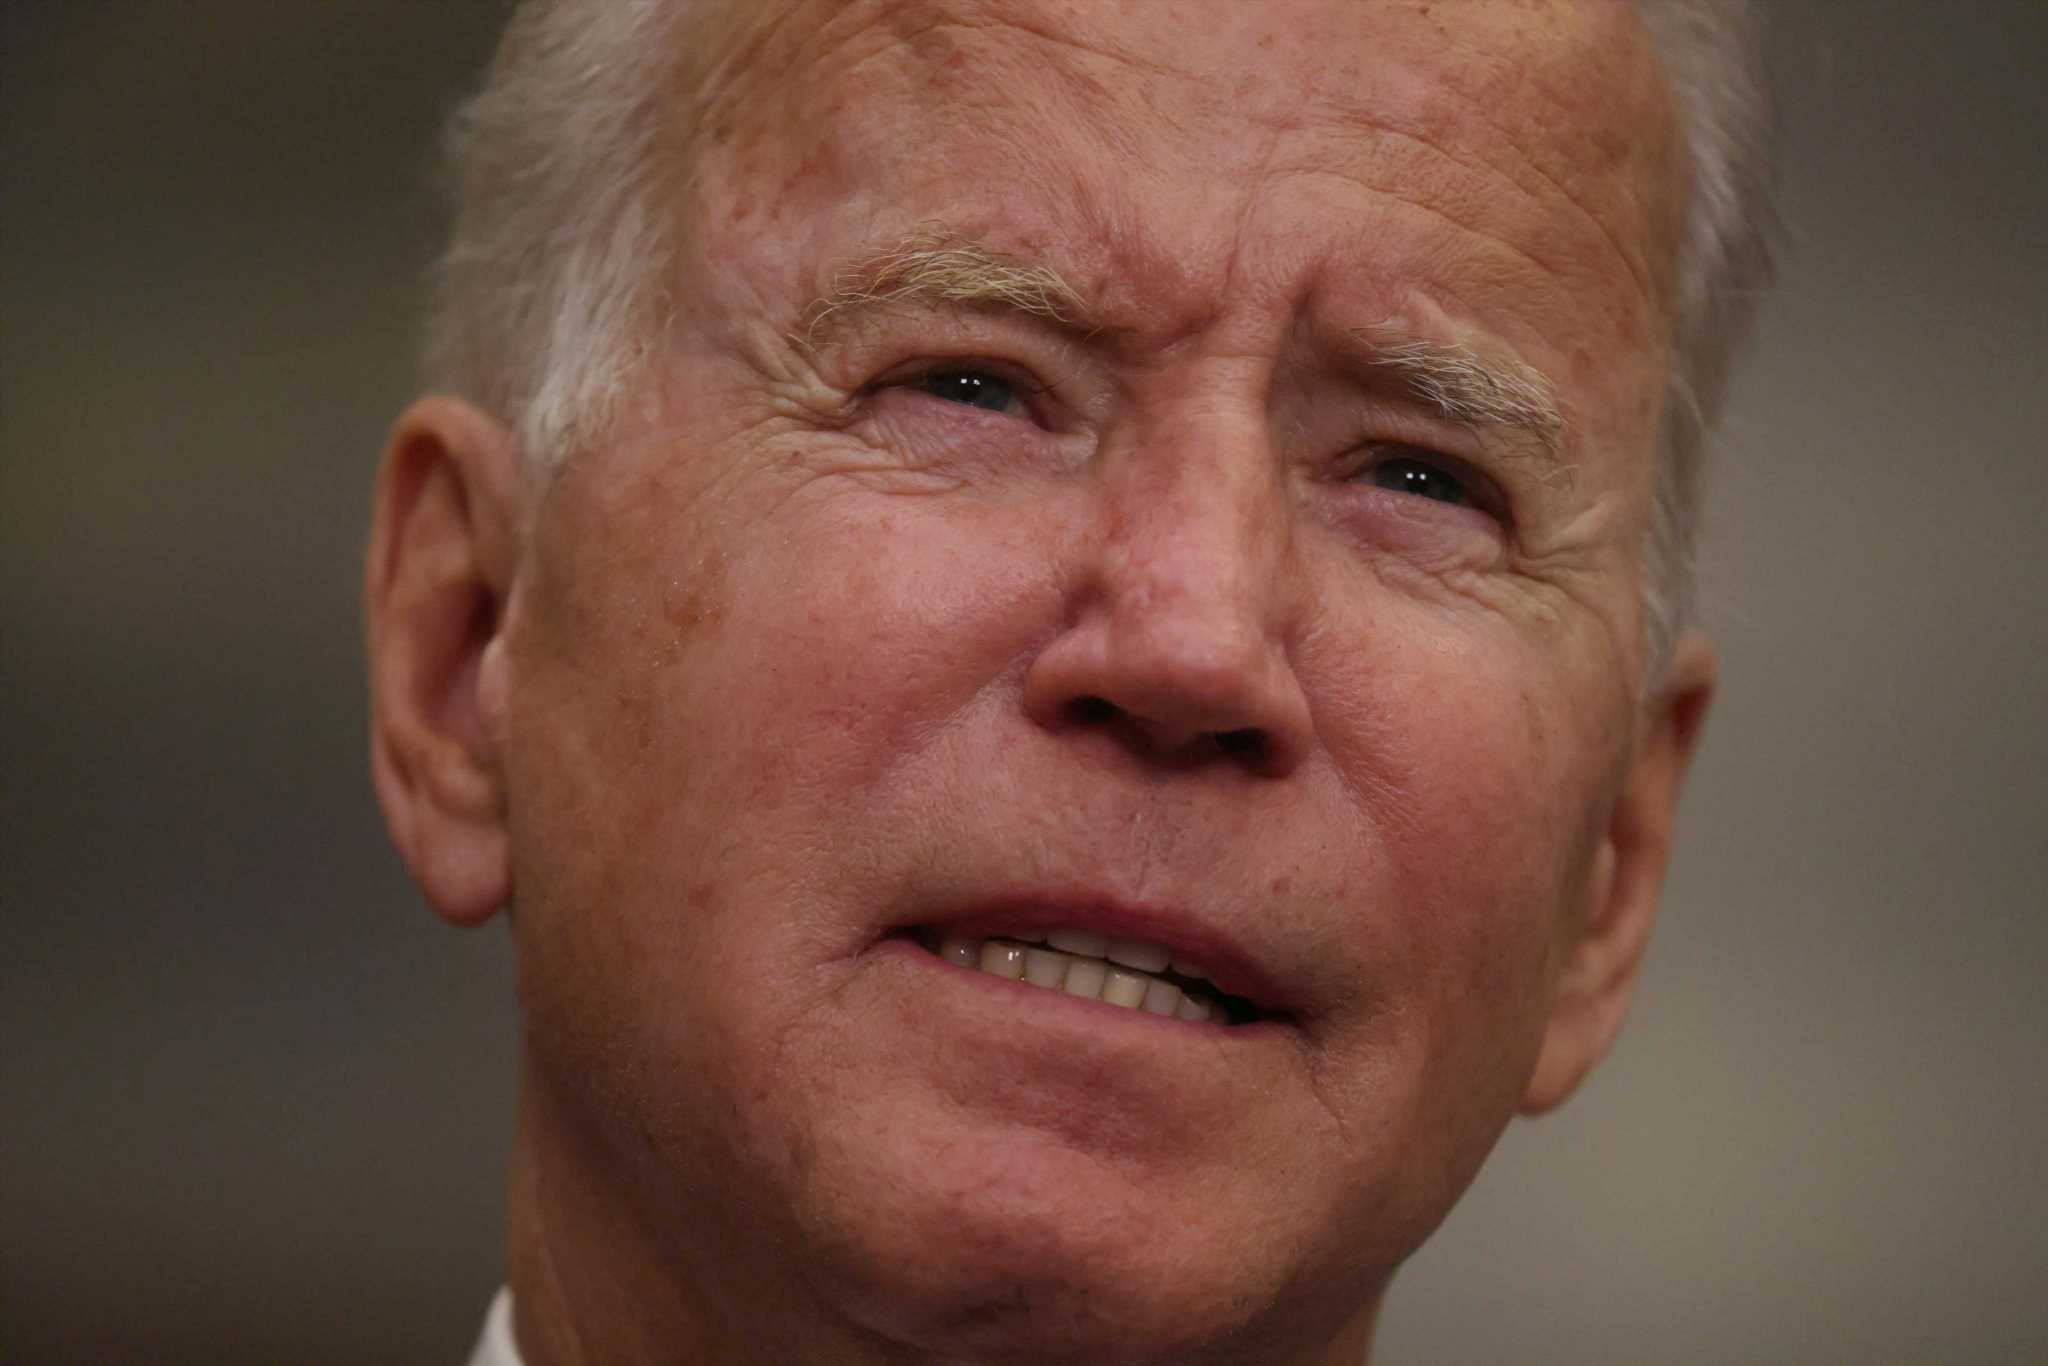 Bungling Joe Biden has the blood of at least 12 US troops and innocent Afghans on his hands